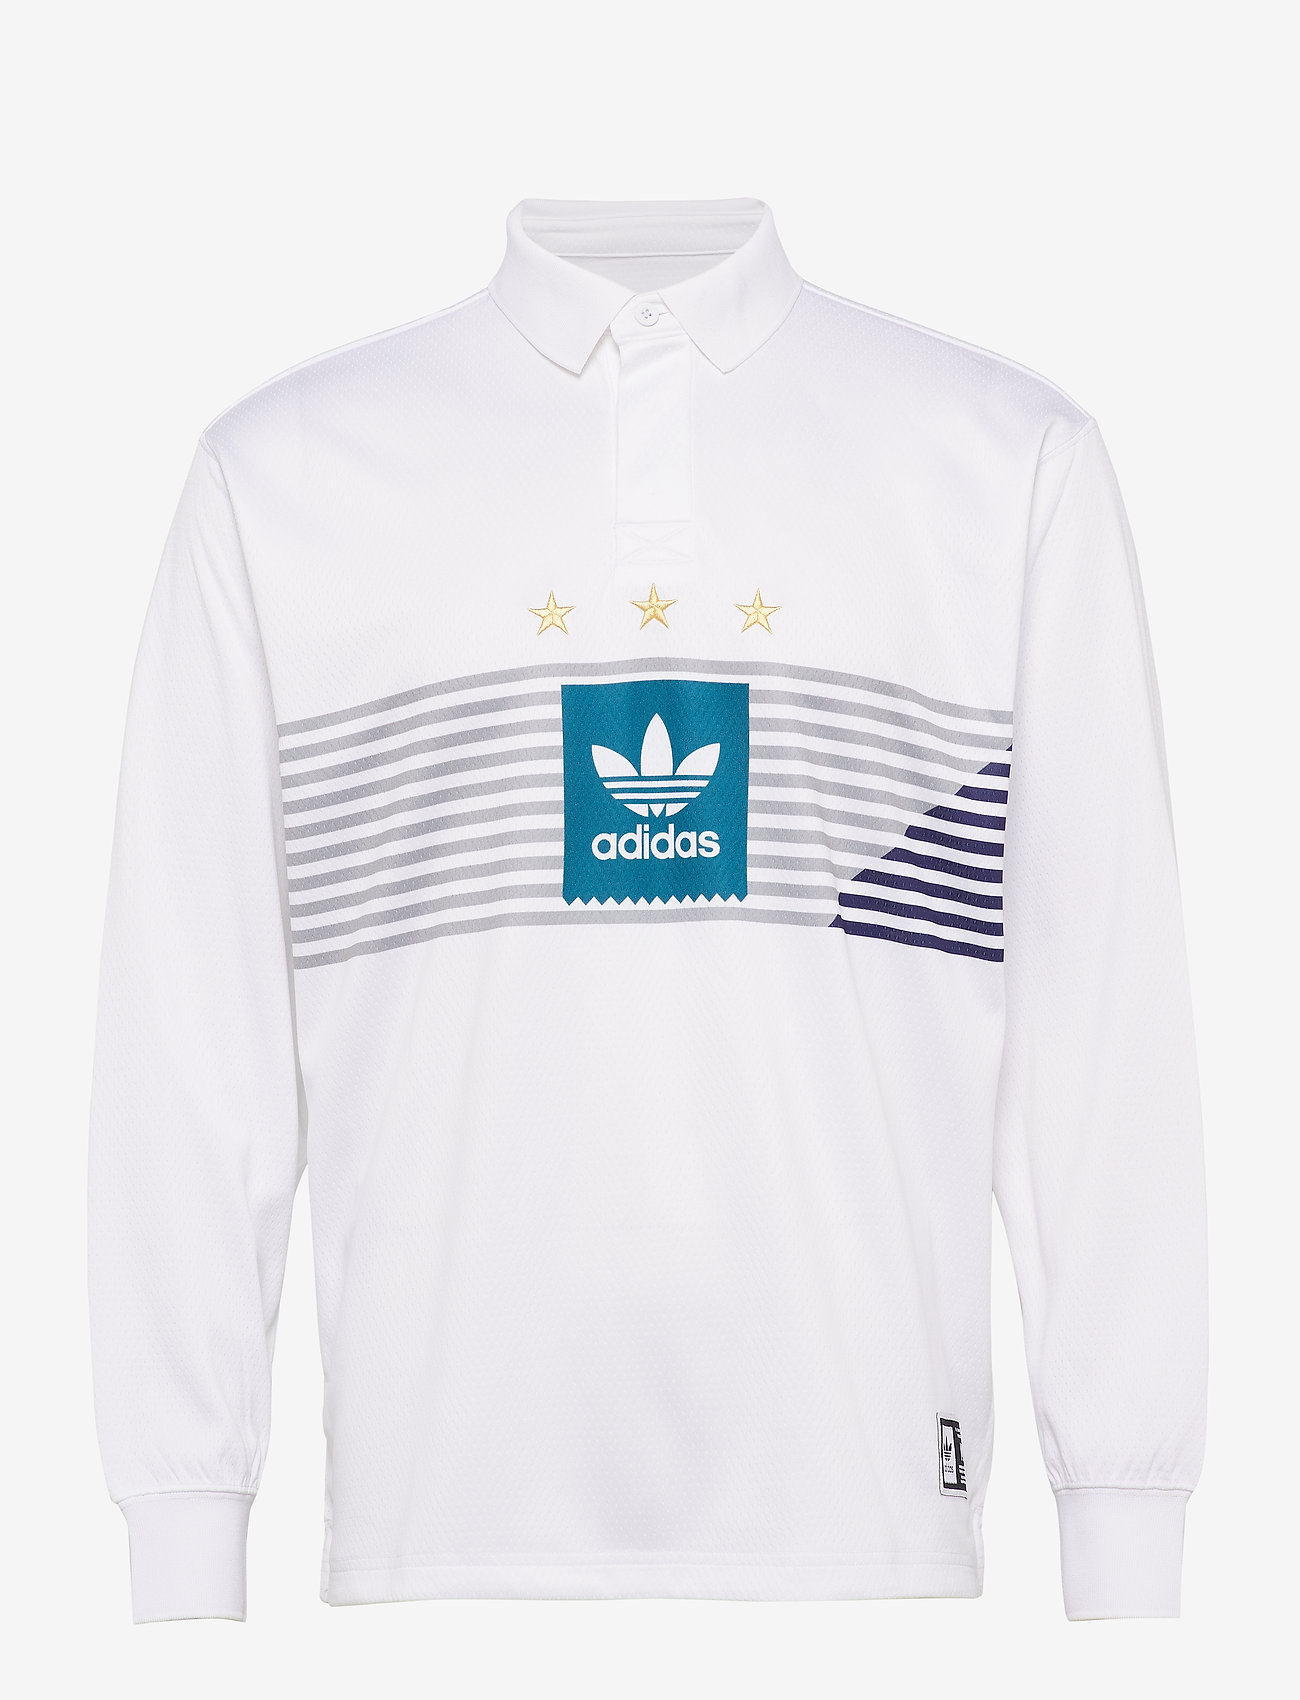 Elvtd Ls Rugby (White/gretwo/acttea/c) - adidas Performance PvCDfJ